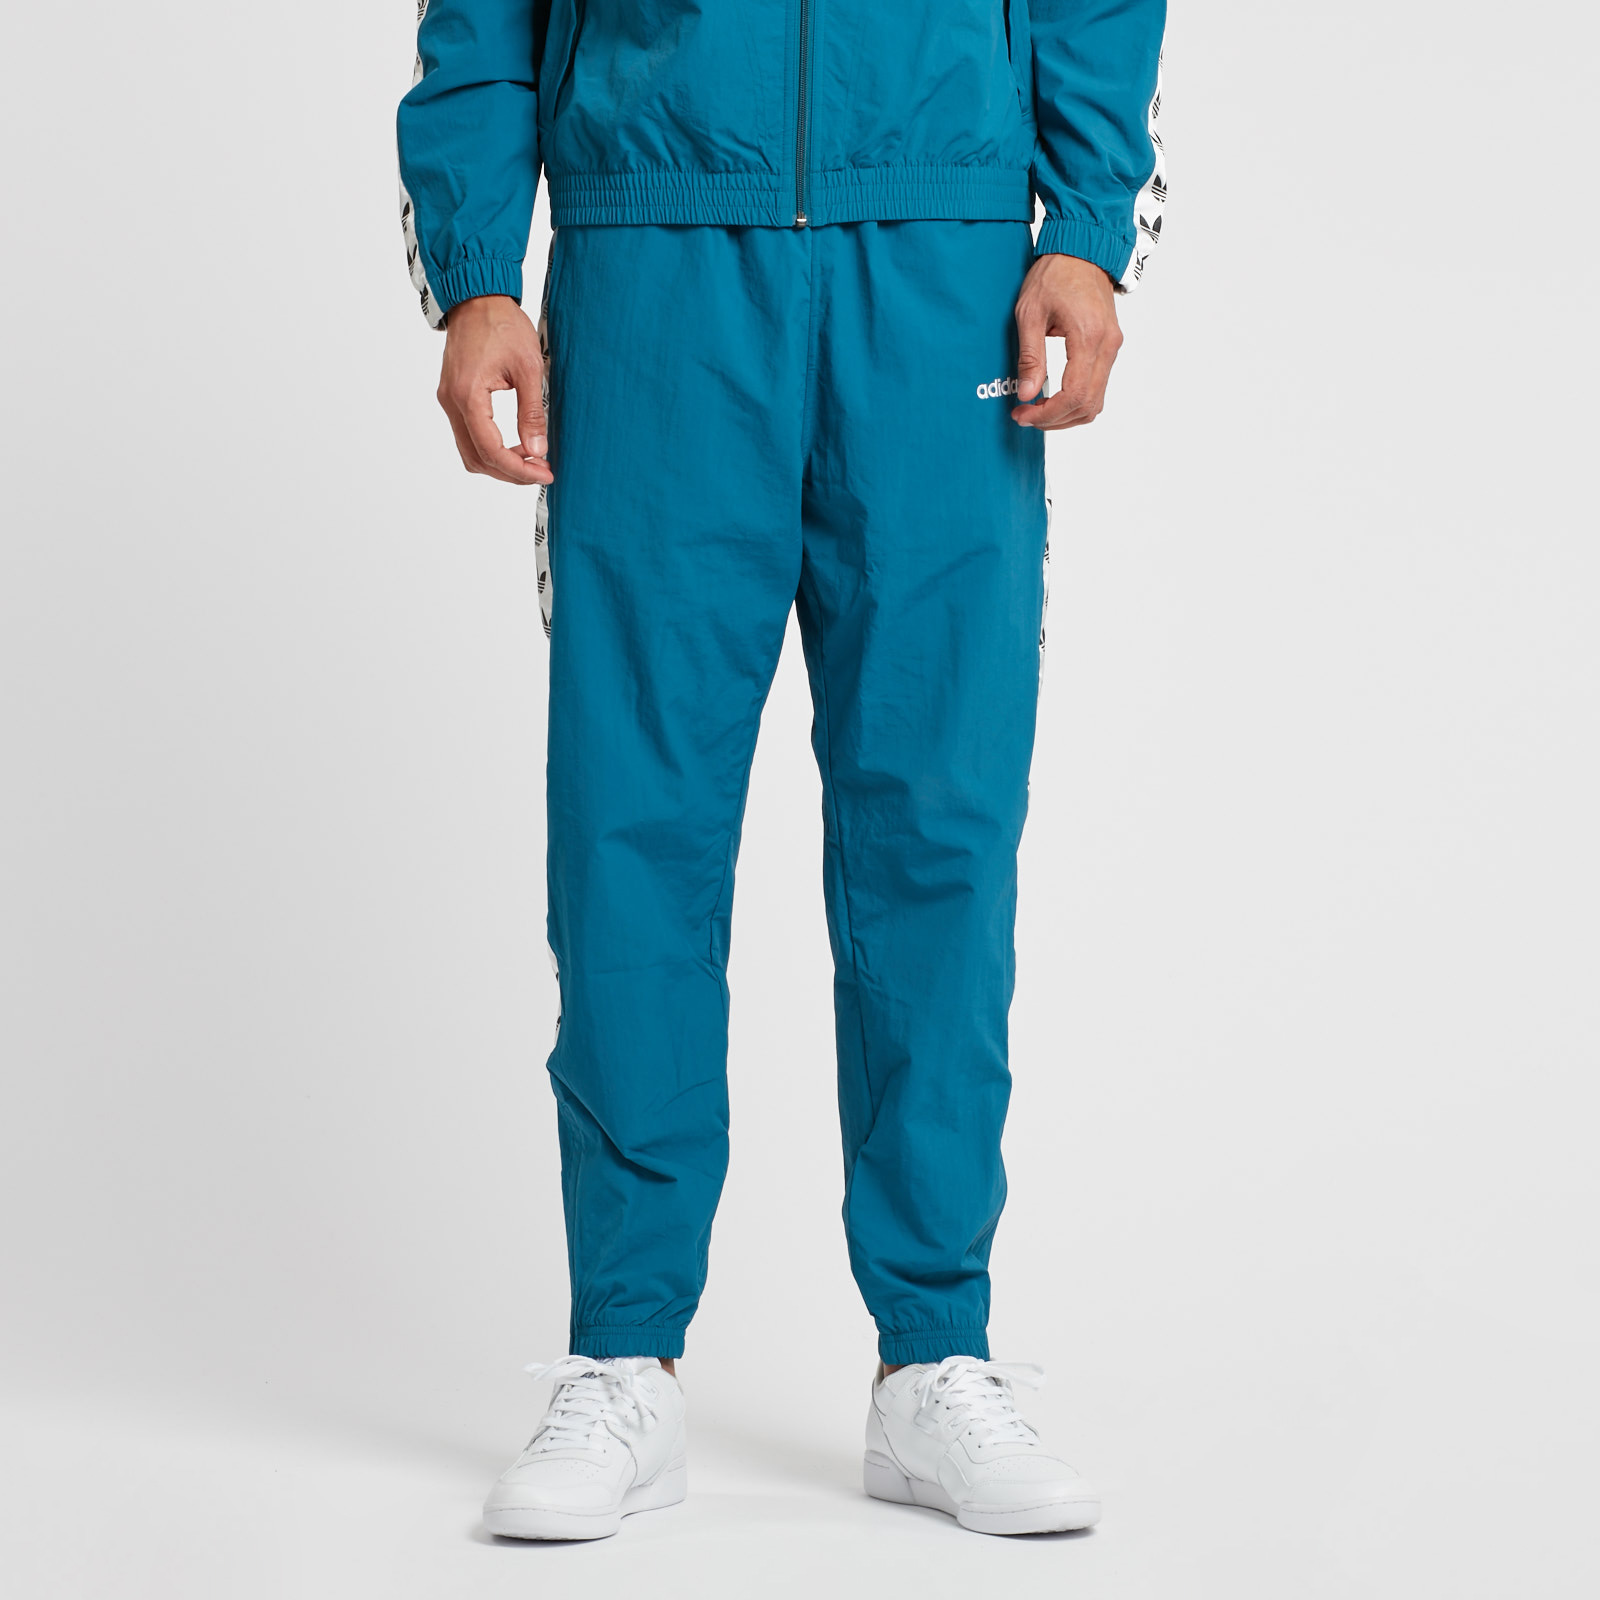 adidas TNT Wind Pant Ce4824 Sneakersnstuff I Sneakers